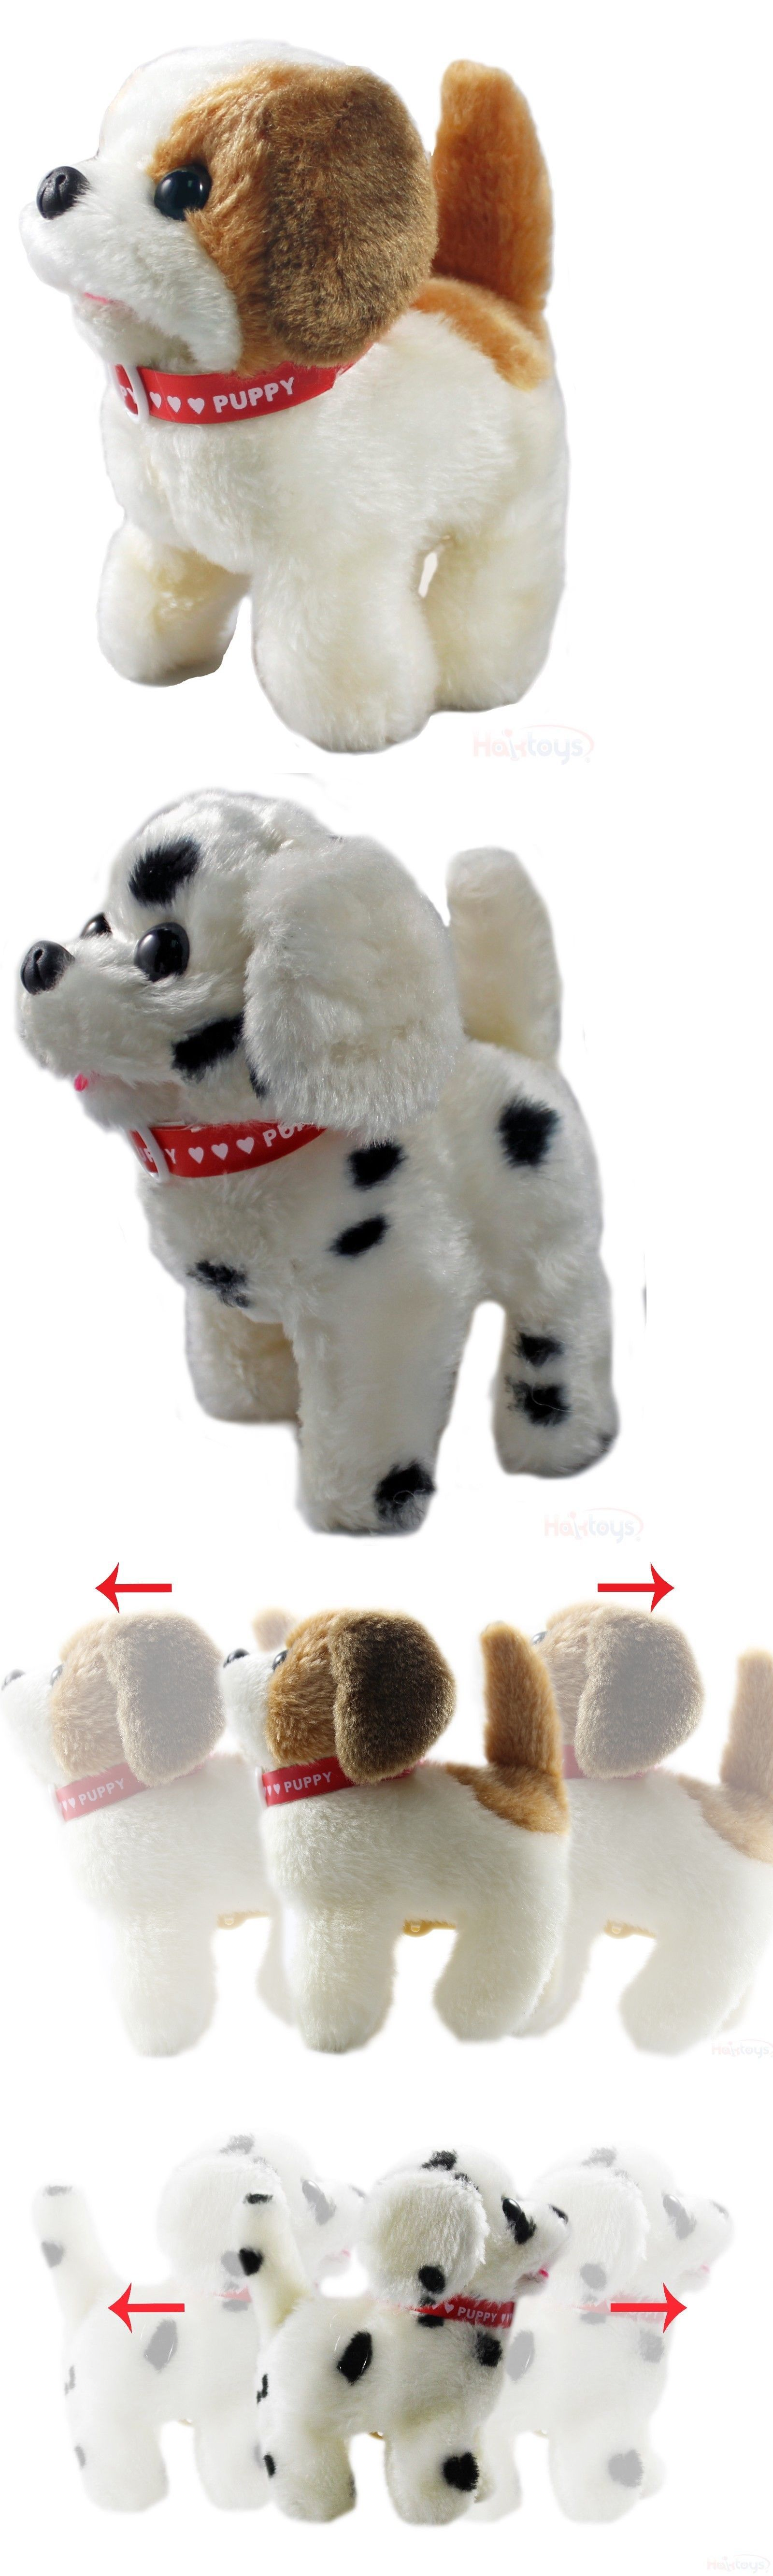 Animals 145942 Haktoys Toy Puppy Battery Operated Walking And